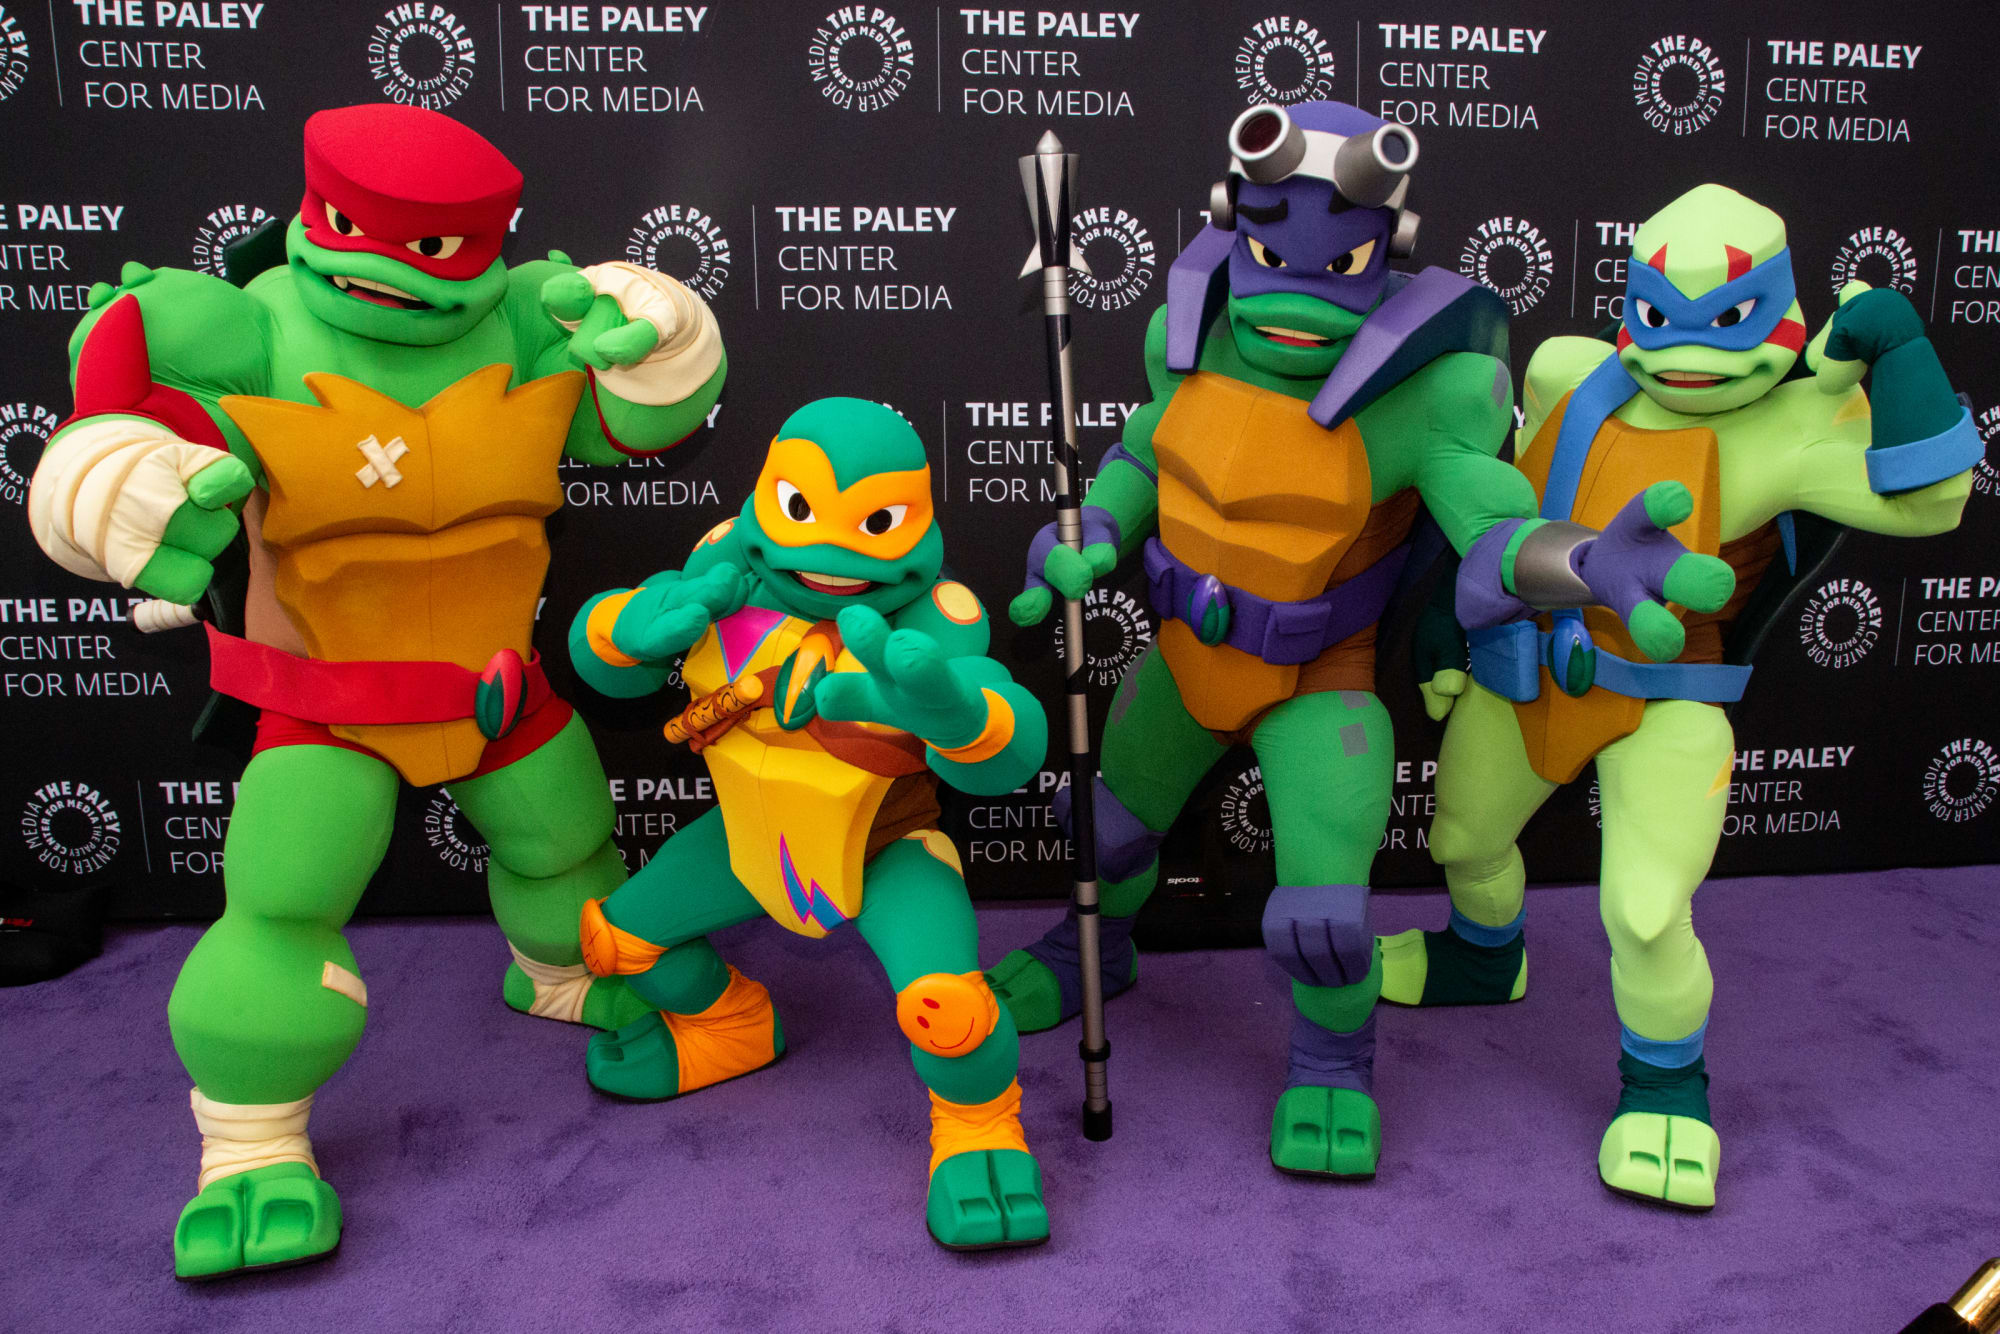 Teenage Mutant Ninja Turtles are getting a film reboot with a twist